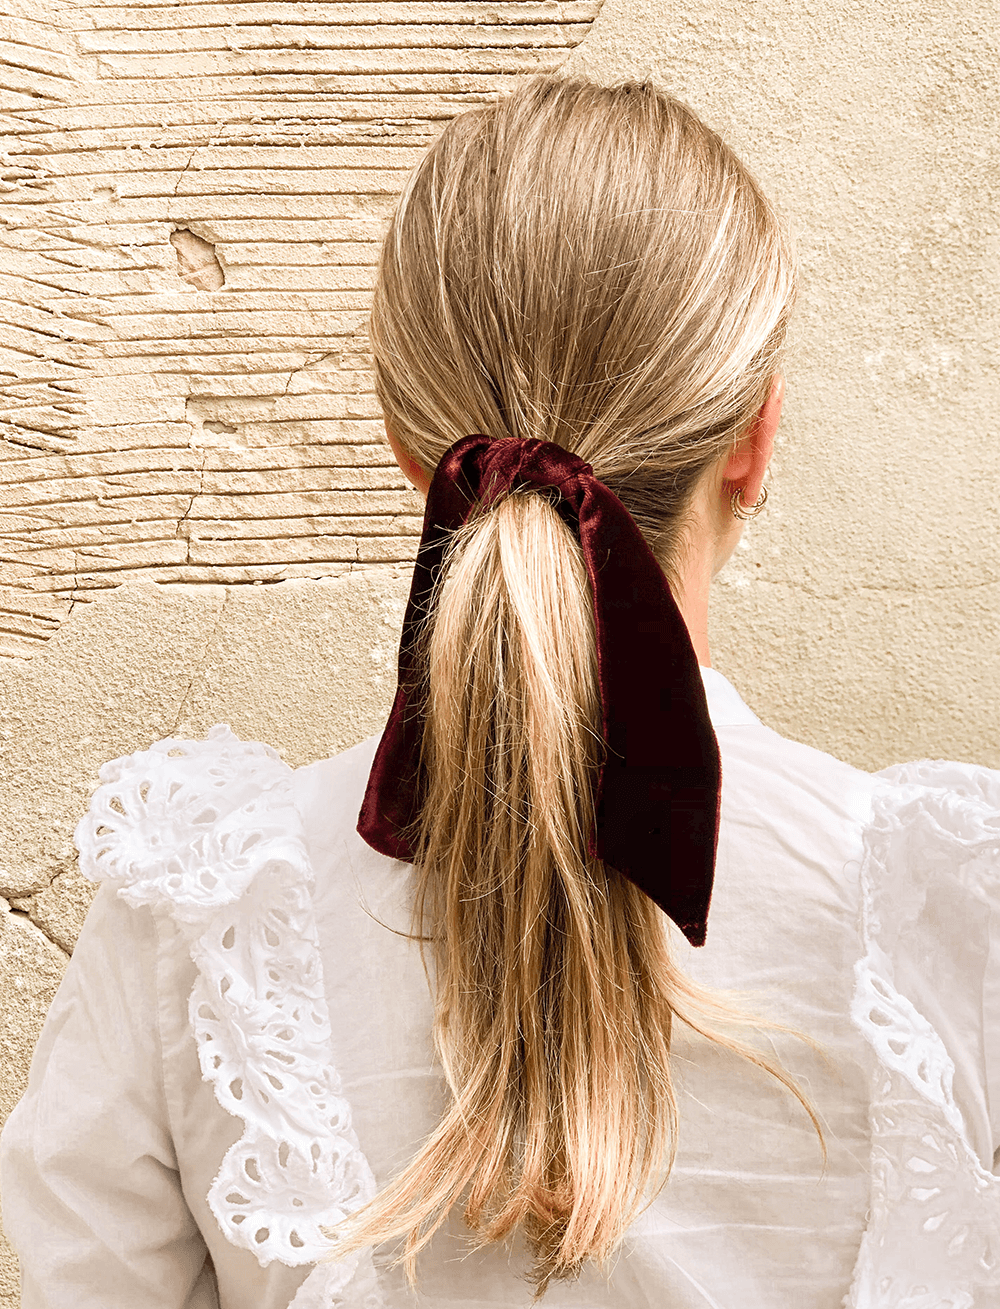 Lio Mara Maroon Silk Velvet Hair Tie For Ponytail Worn With White Shirt